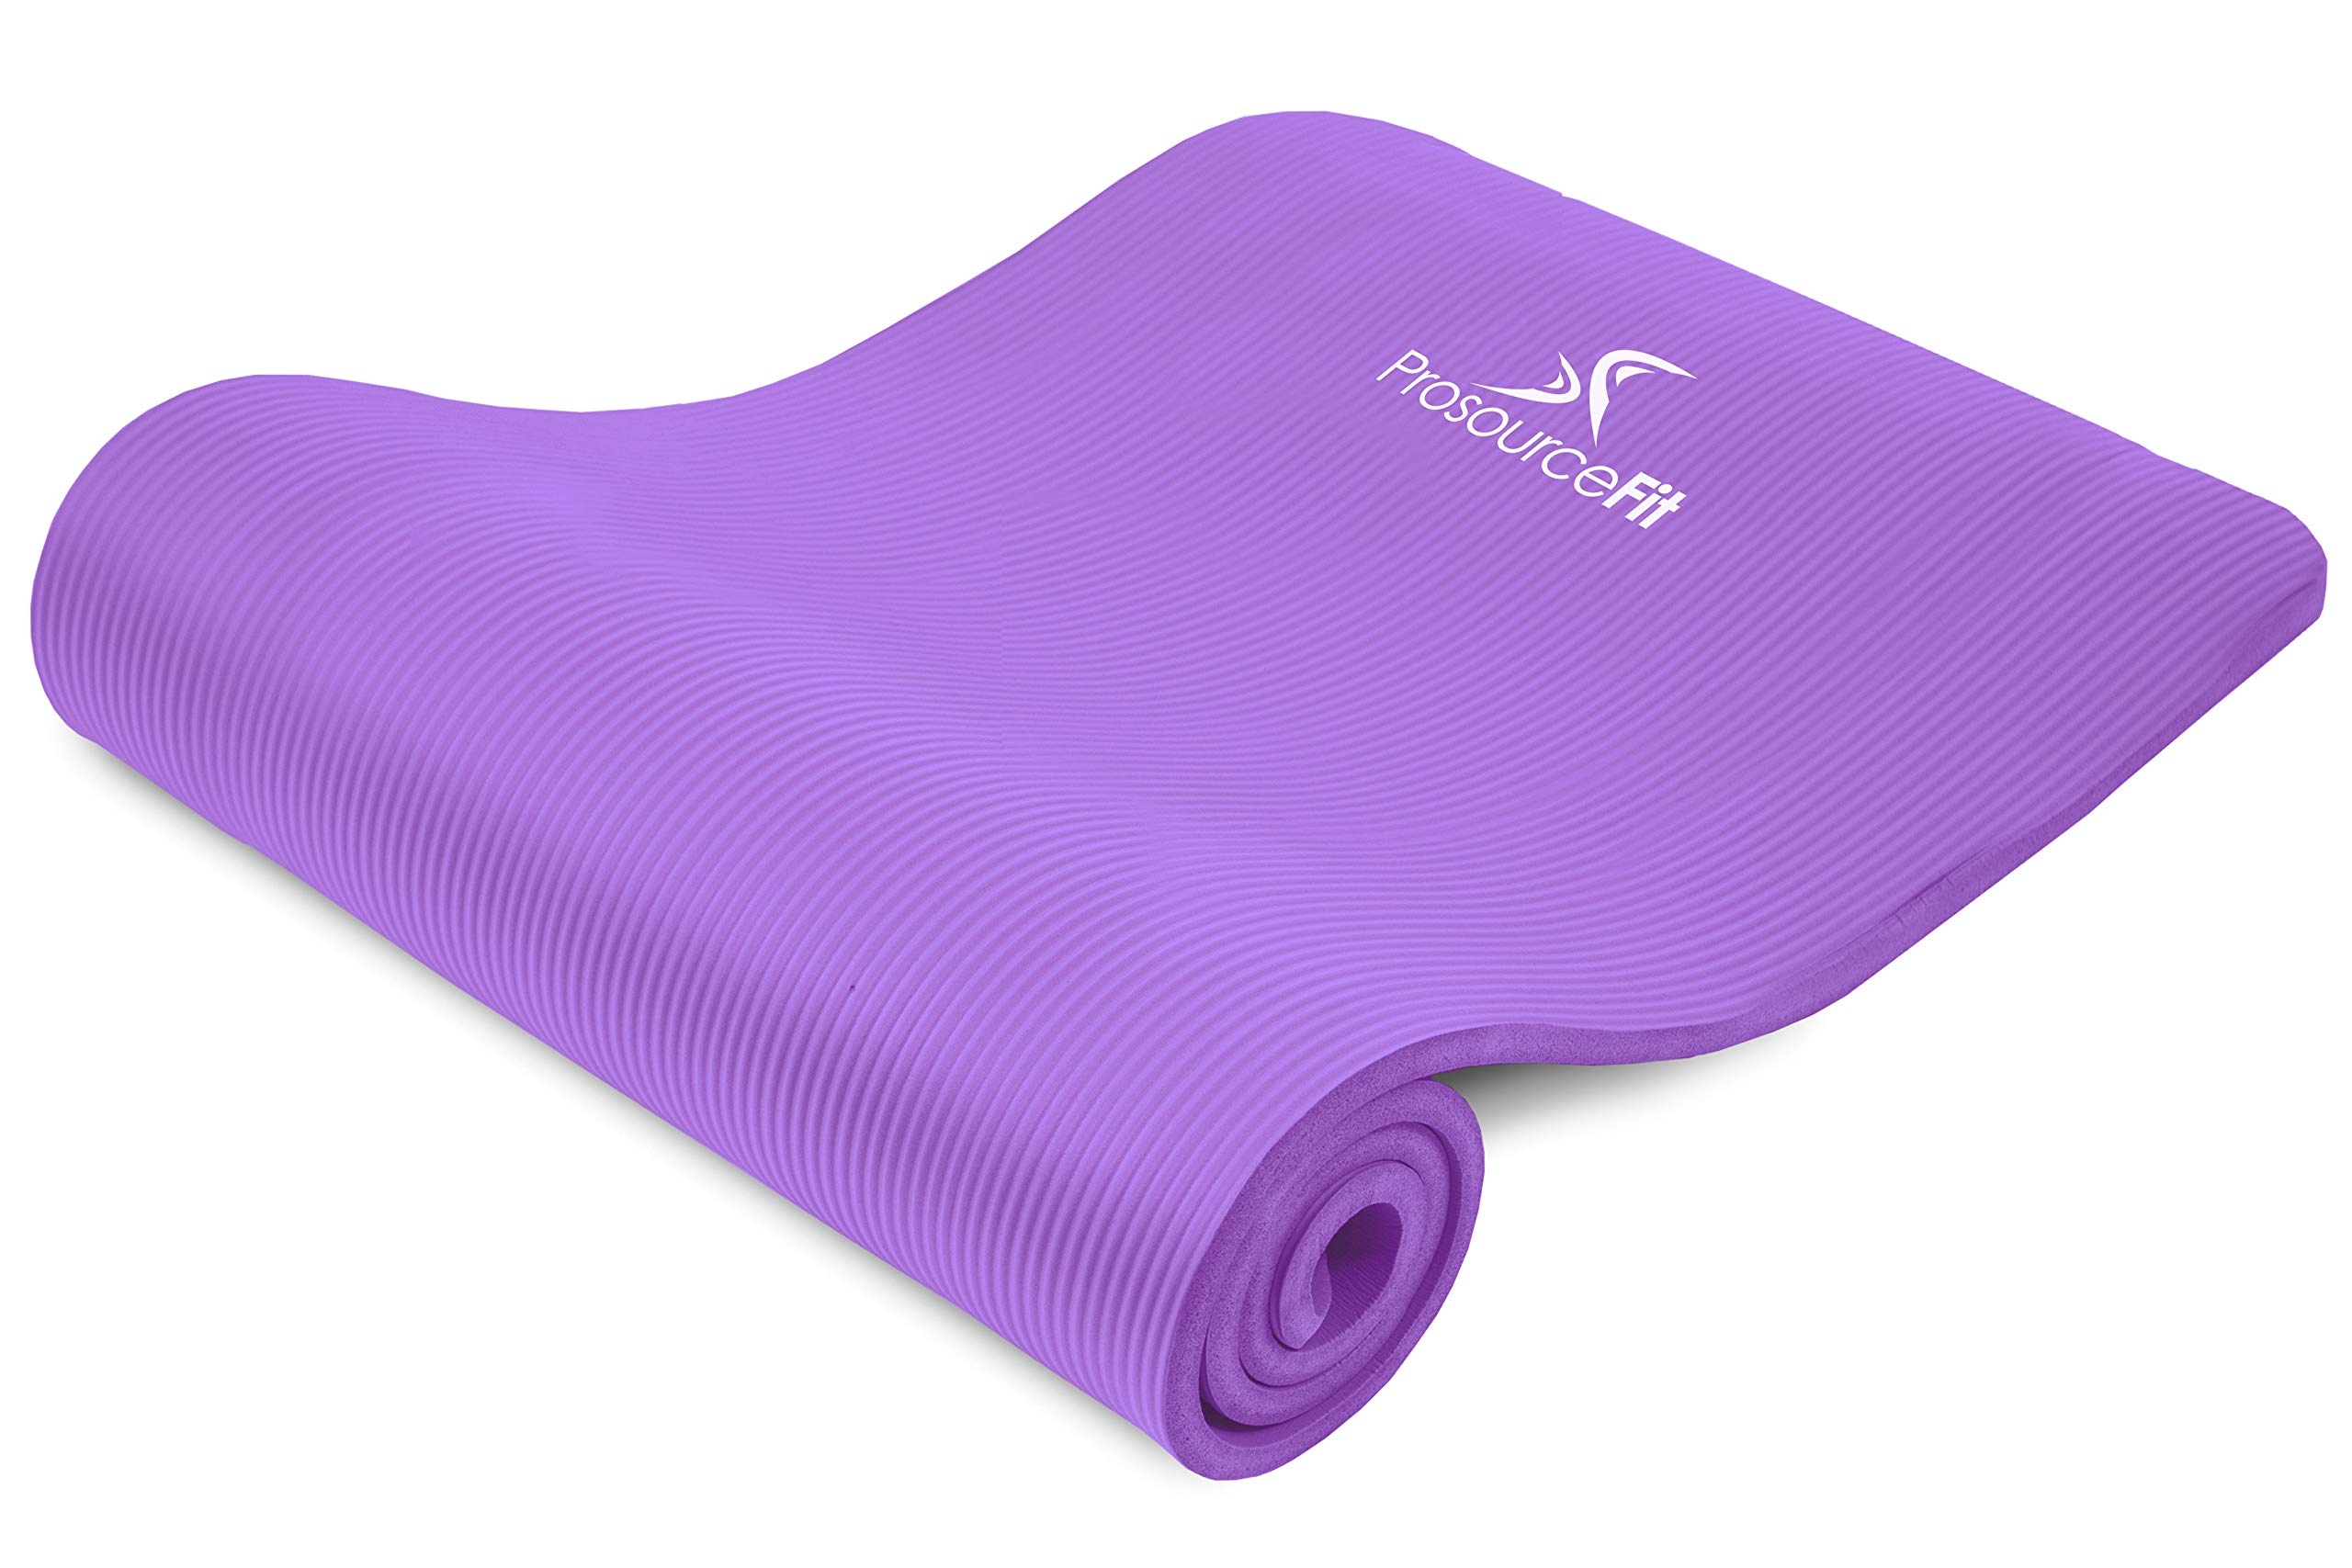 ProsourceFit Extra Thick Yoga and Pilates Mat ½'' (13mm), 71-inch Long High Density Exercise Mat with Comfort Foam and Carrying Strap, Purple